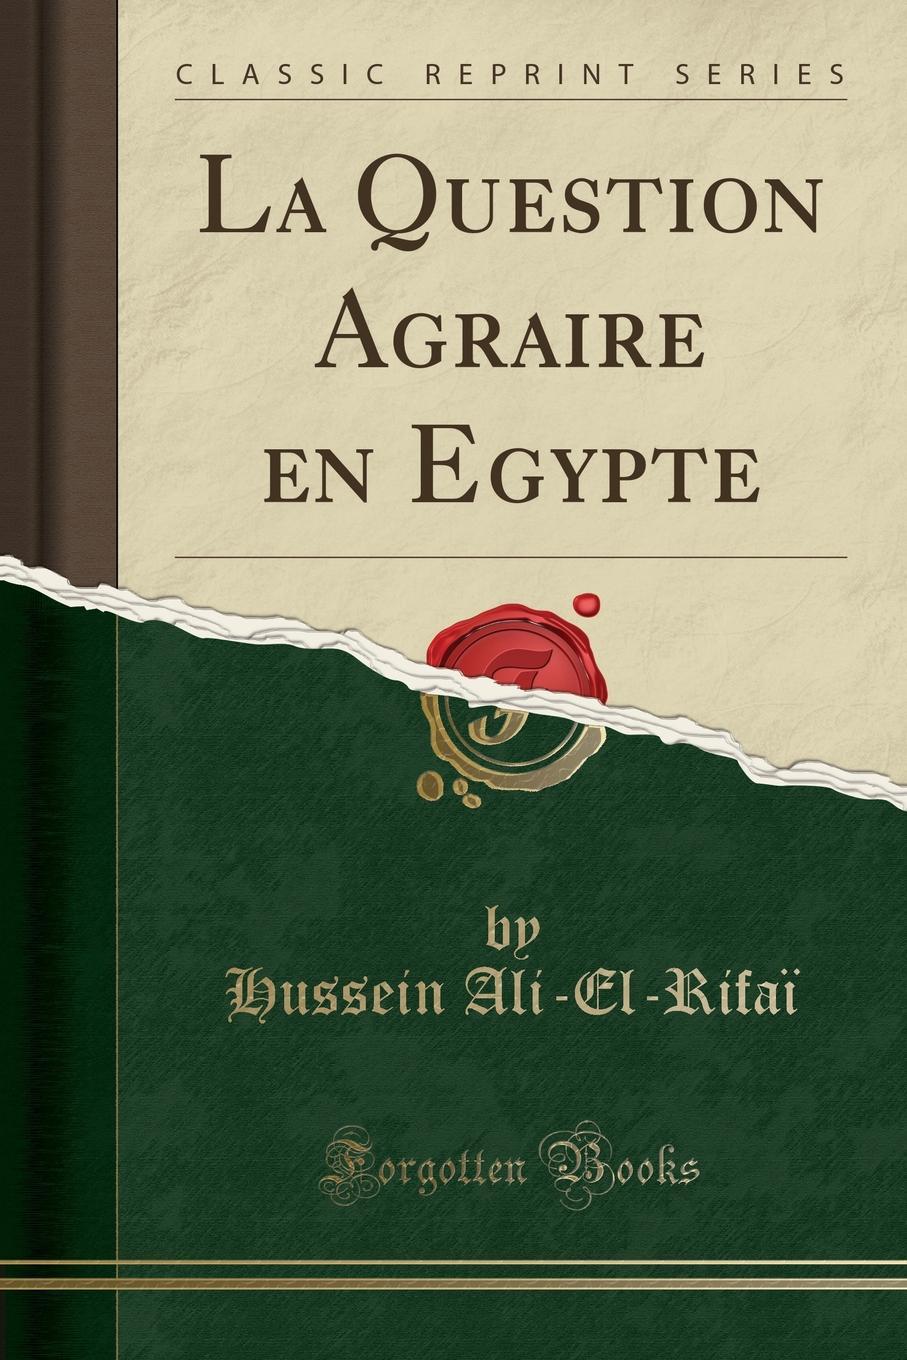 La Question Agraire en Egypte (Classic Reprint) Excerpt from La Question Agraire en EgypteLa puissance et la richesse...